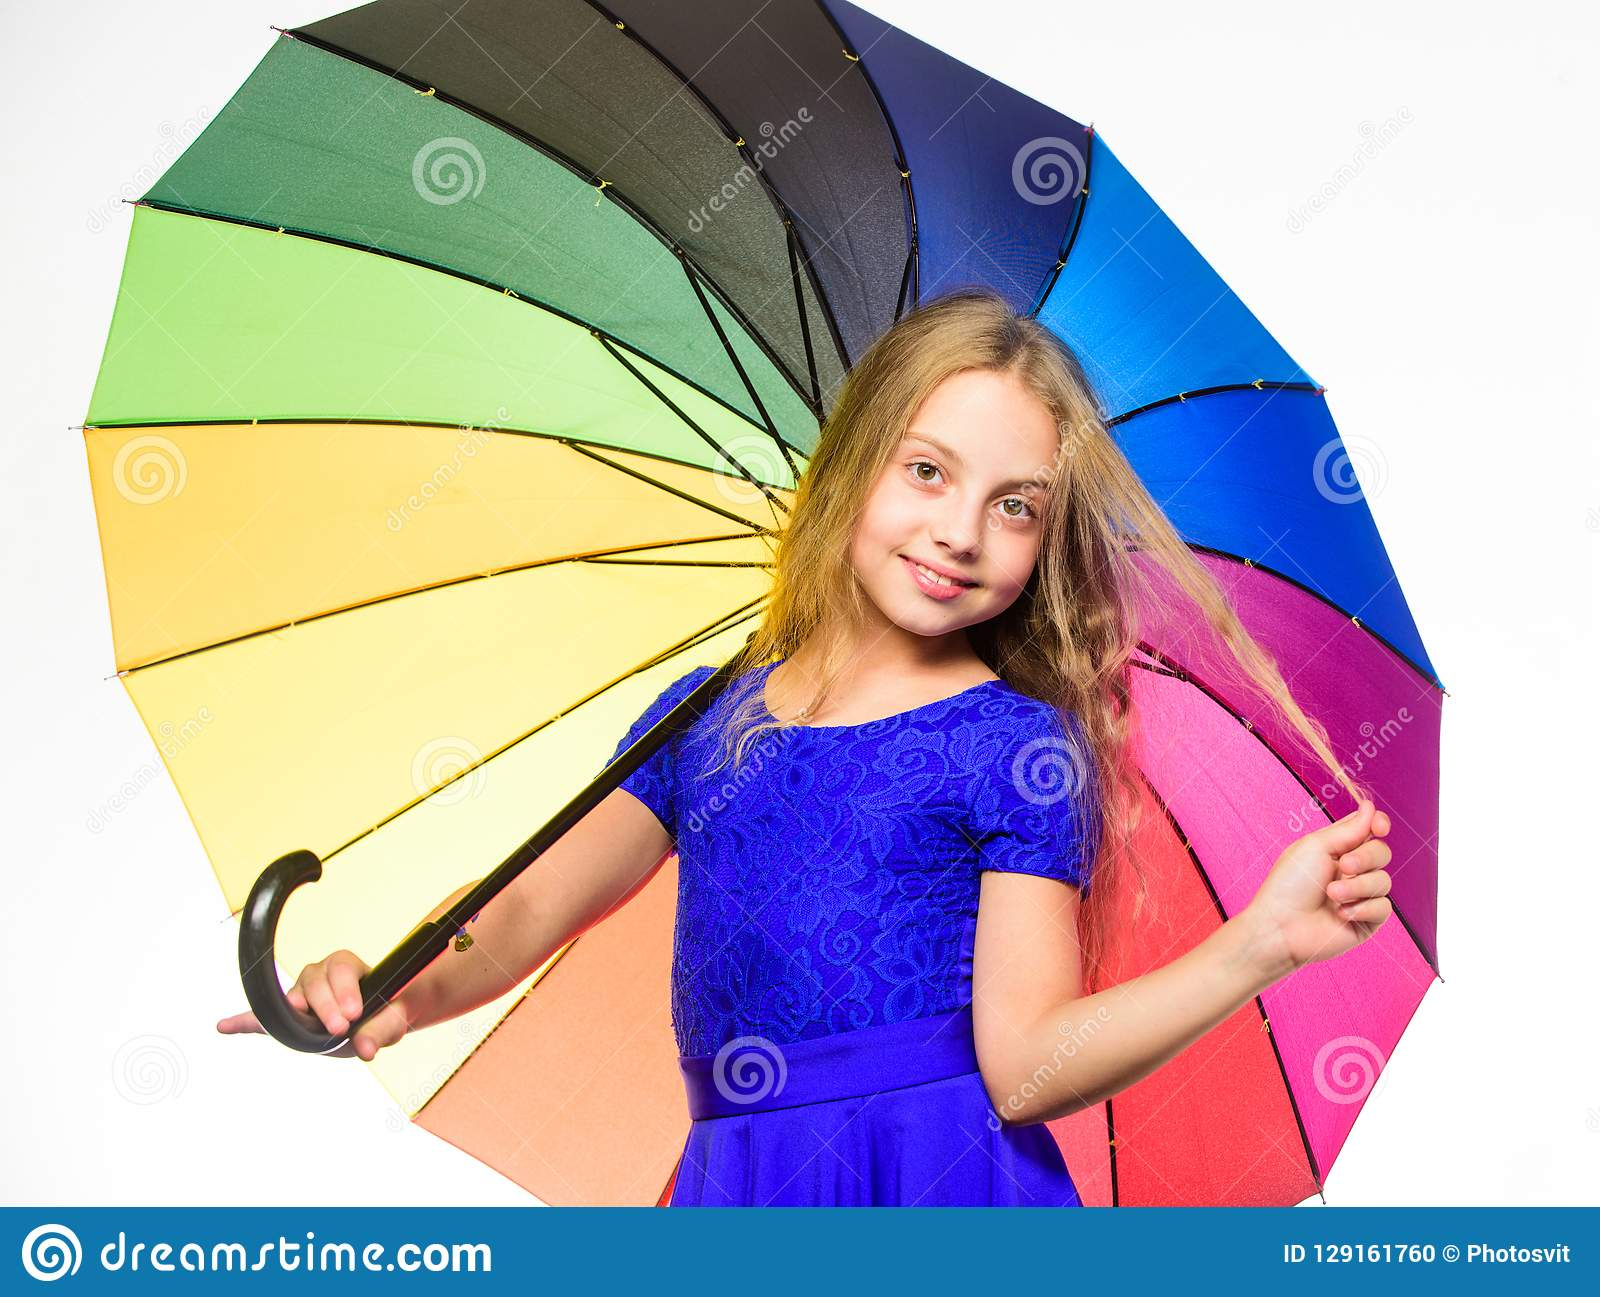 Stay positive fall season. Ways to brighten your fall mood. Girl child ready meet fall weather with colorful umbrella